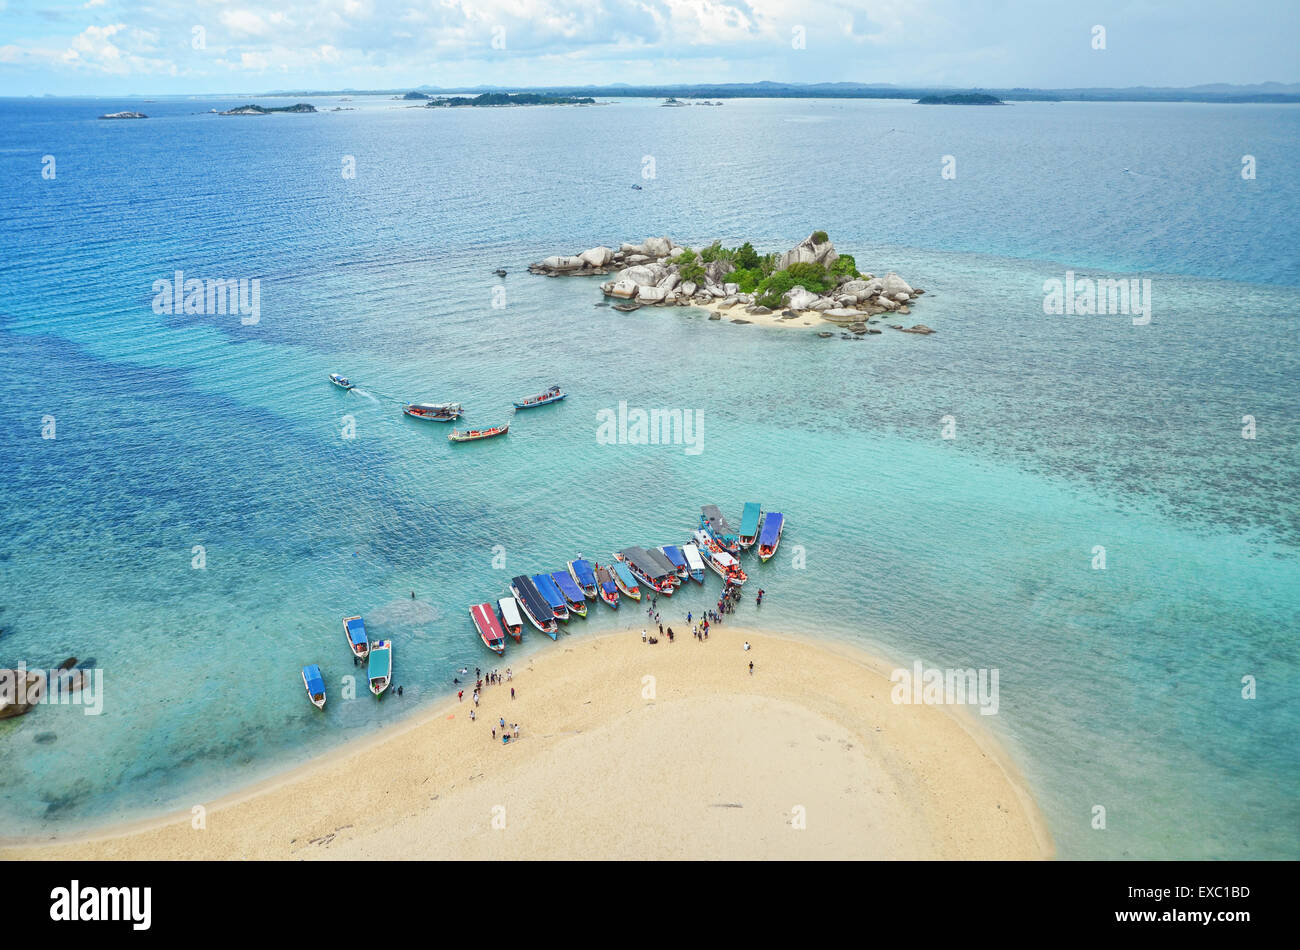 Aerial view of South China Sea from the top of lighthouse in Lengkuas Island - Stock Image